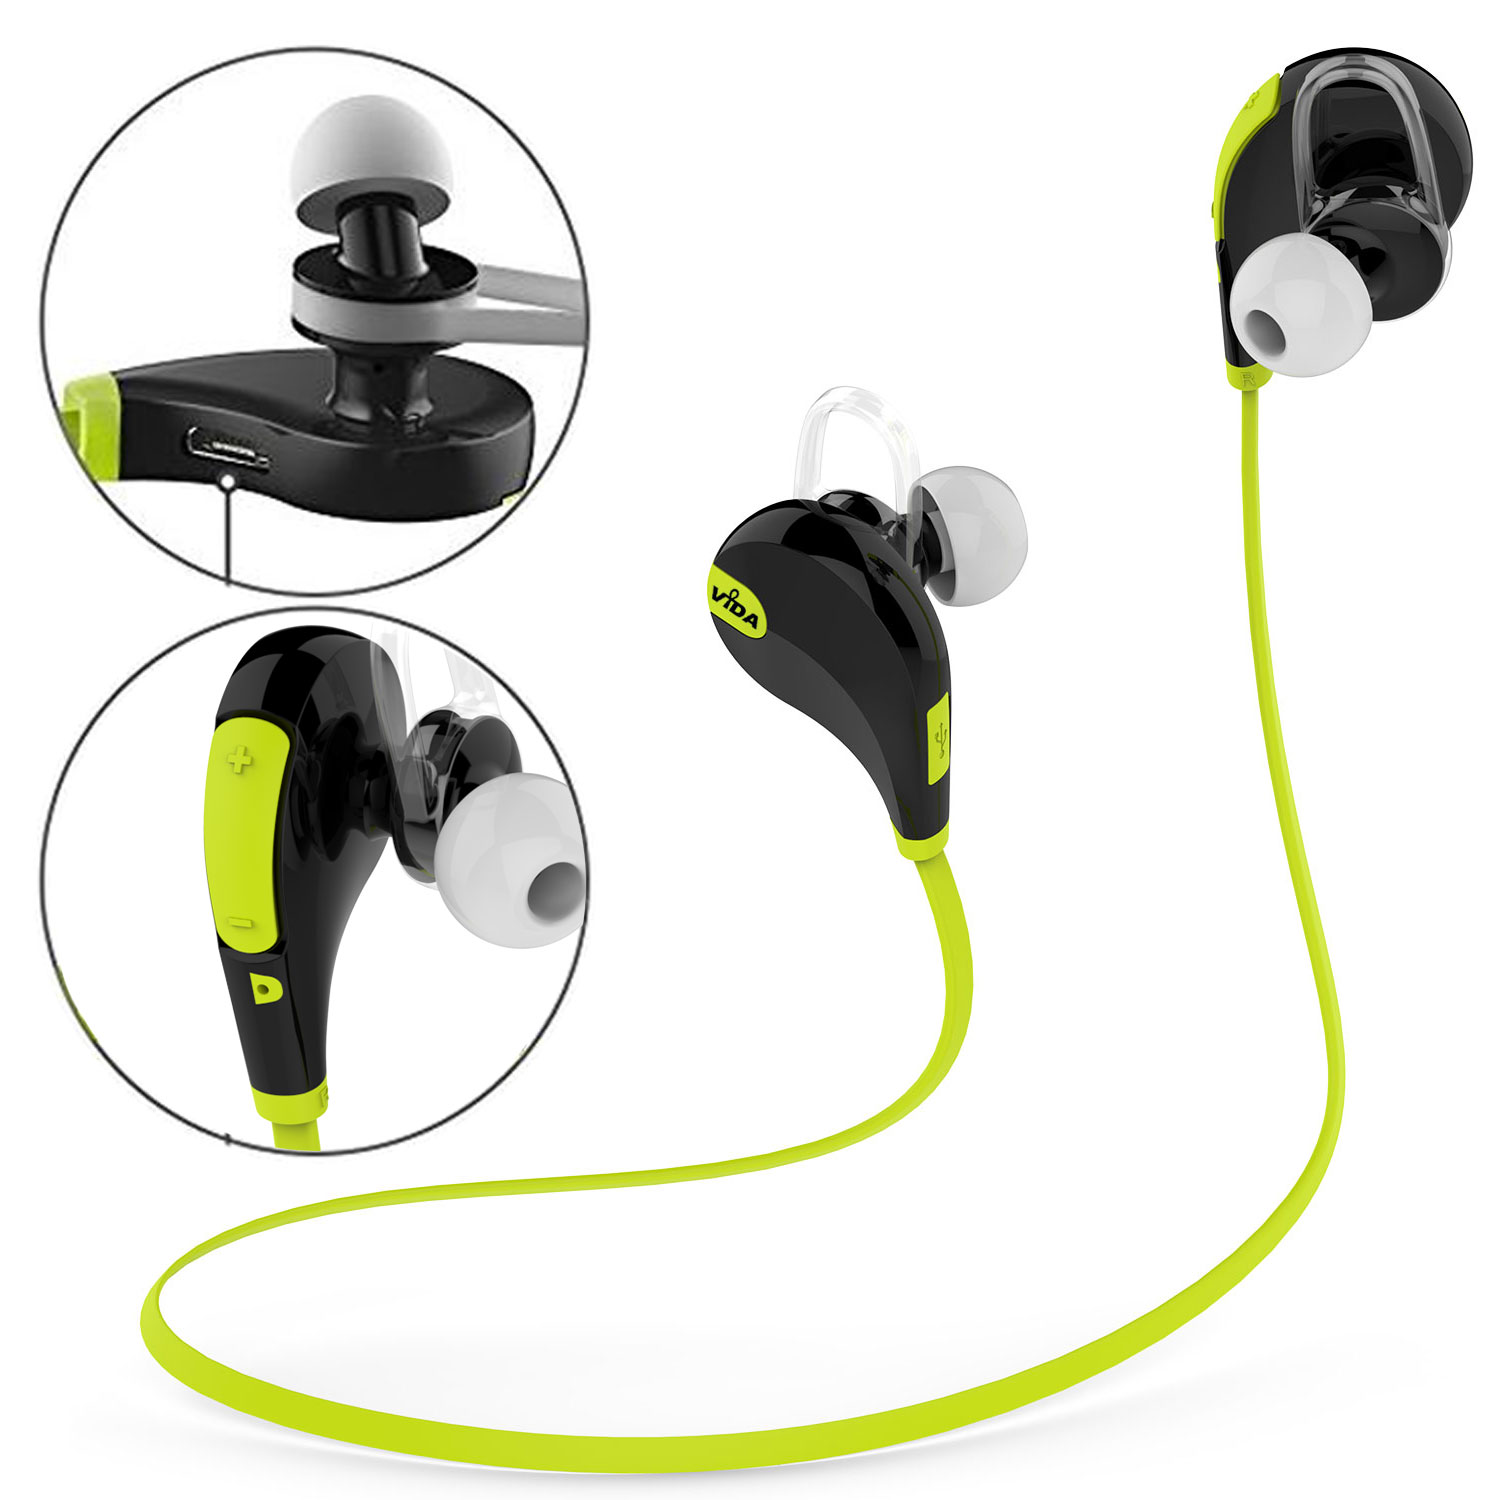 sport stereo casque bluetooth 4 0 a2dp ecouteur sans fil pr htc droid dna ebay. Black Bedroom Furniture Sets. Home Design Ideas